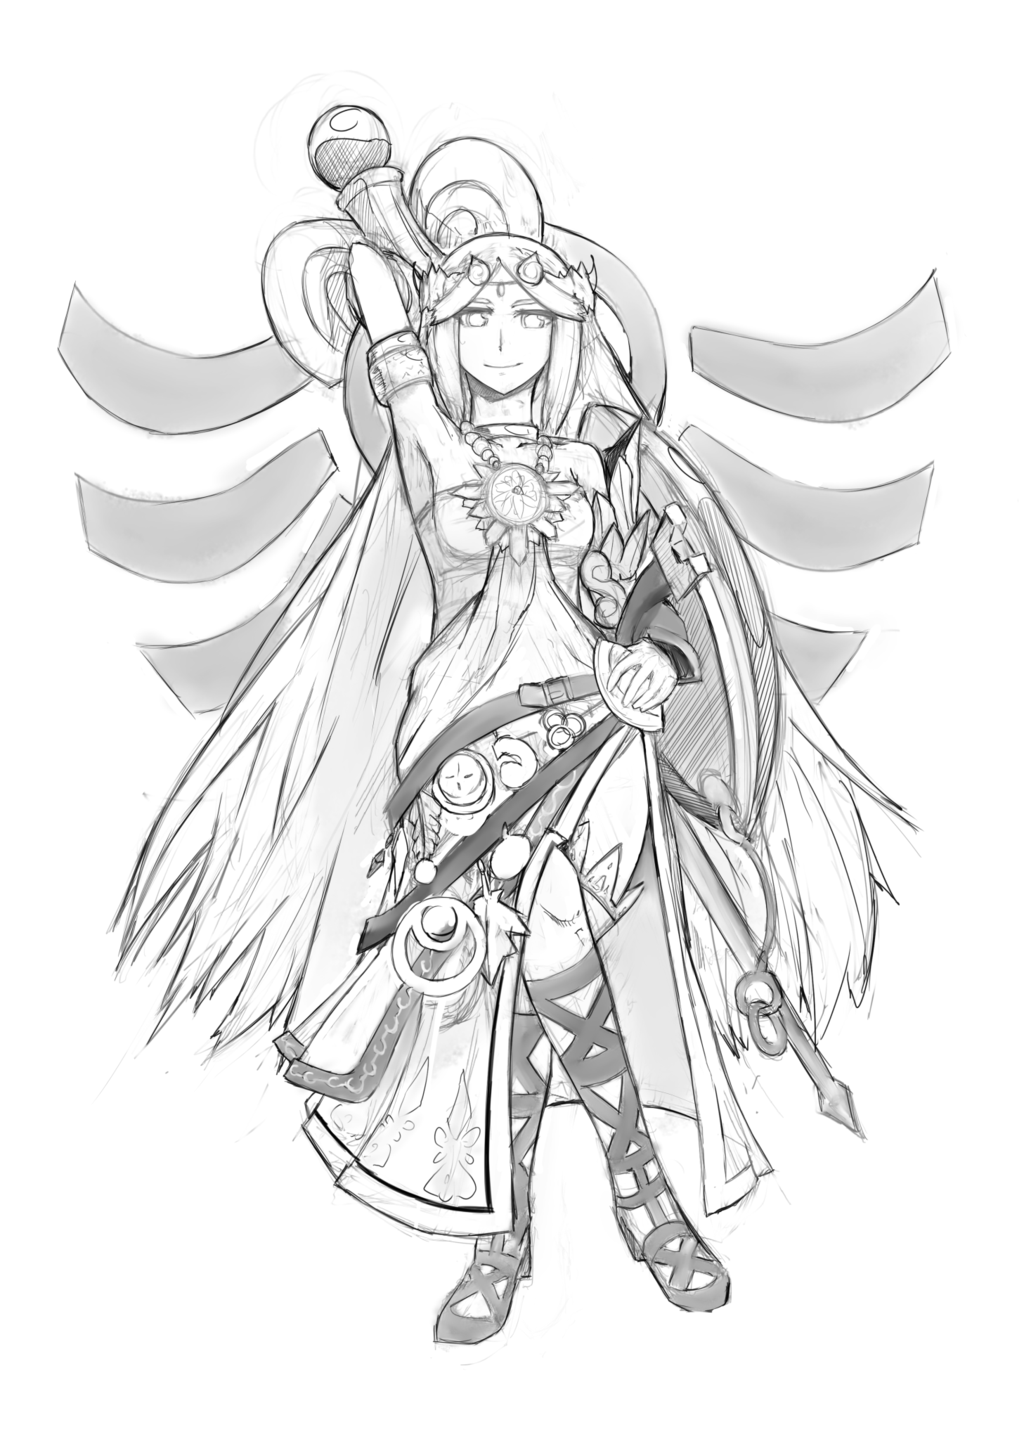 Palutena Fan art by FreezingCicada